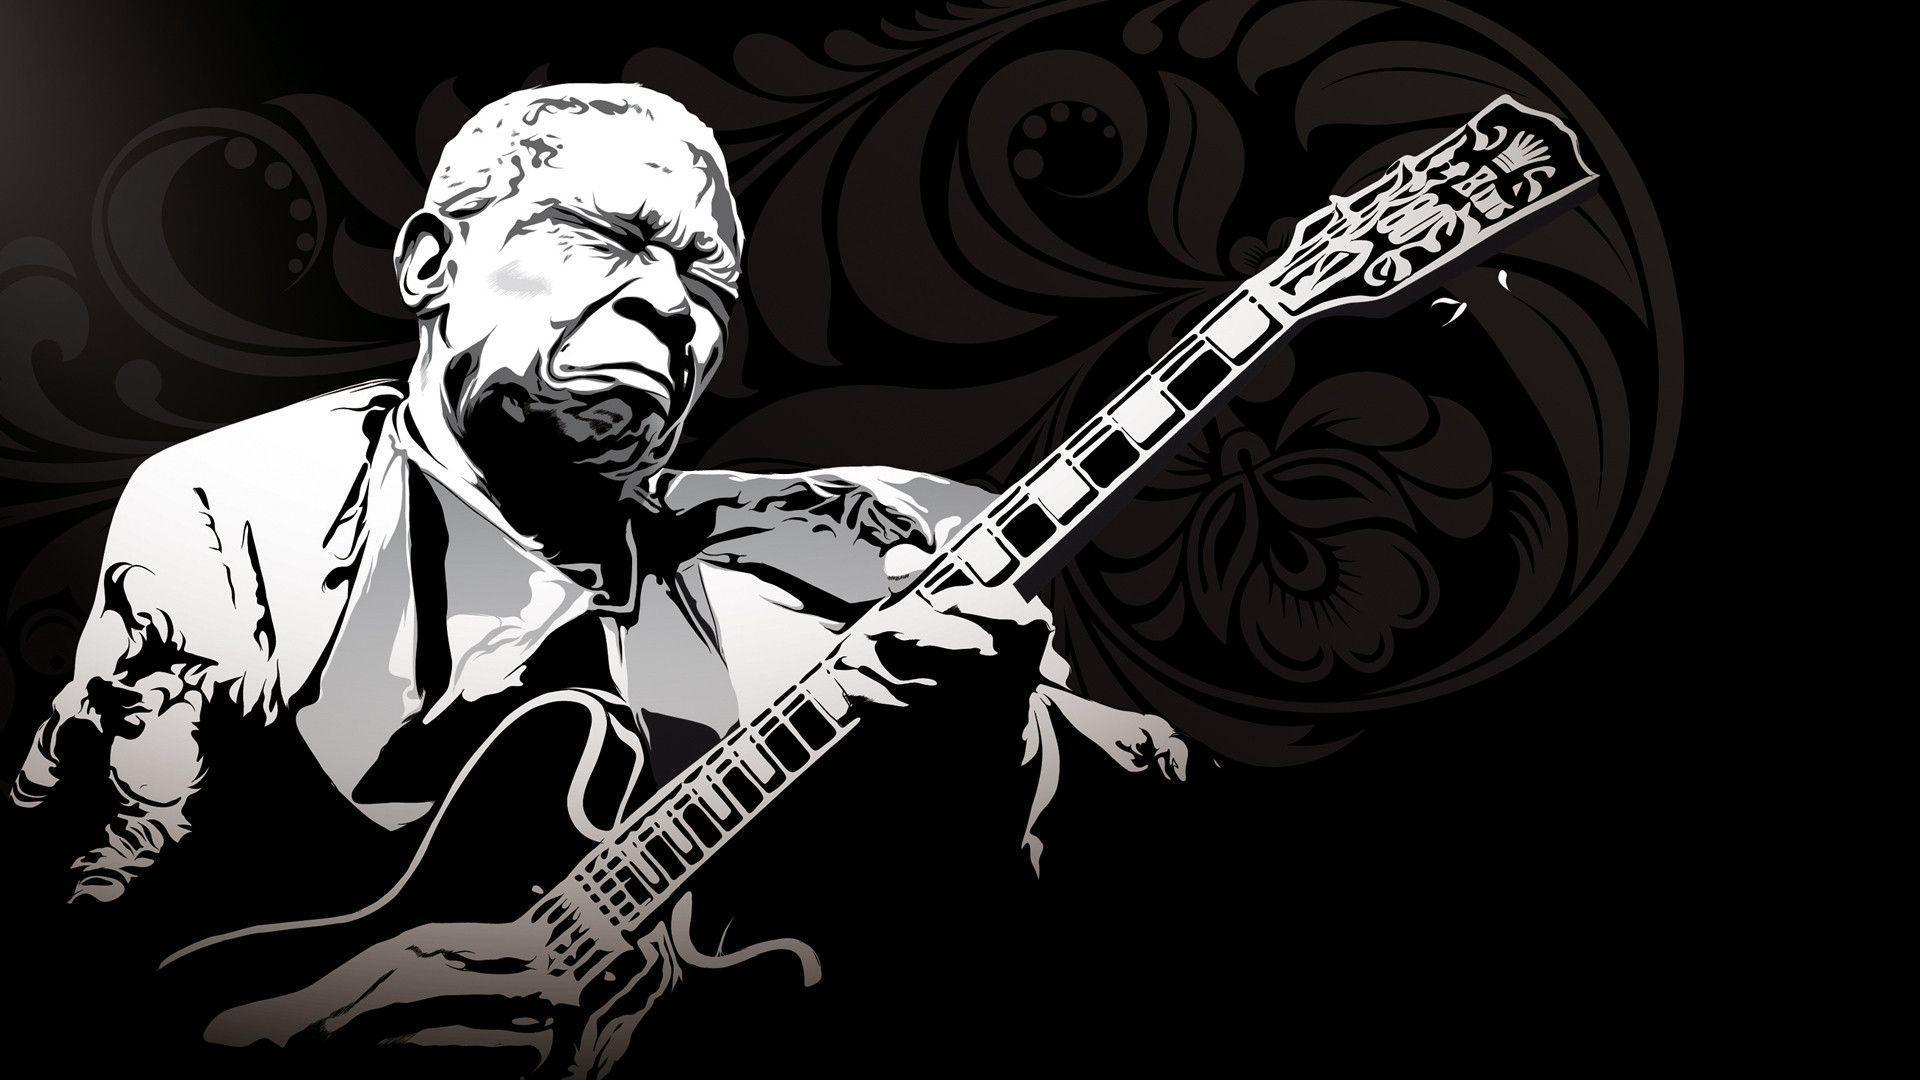 Bb king wallpapers wallpaper cave - King wallpaper ...